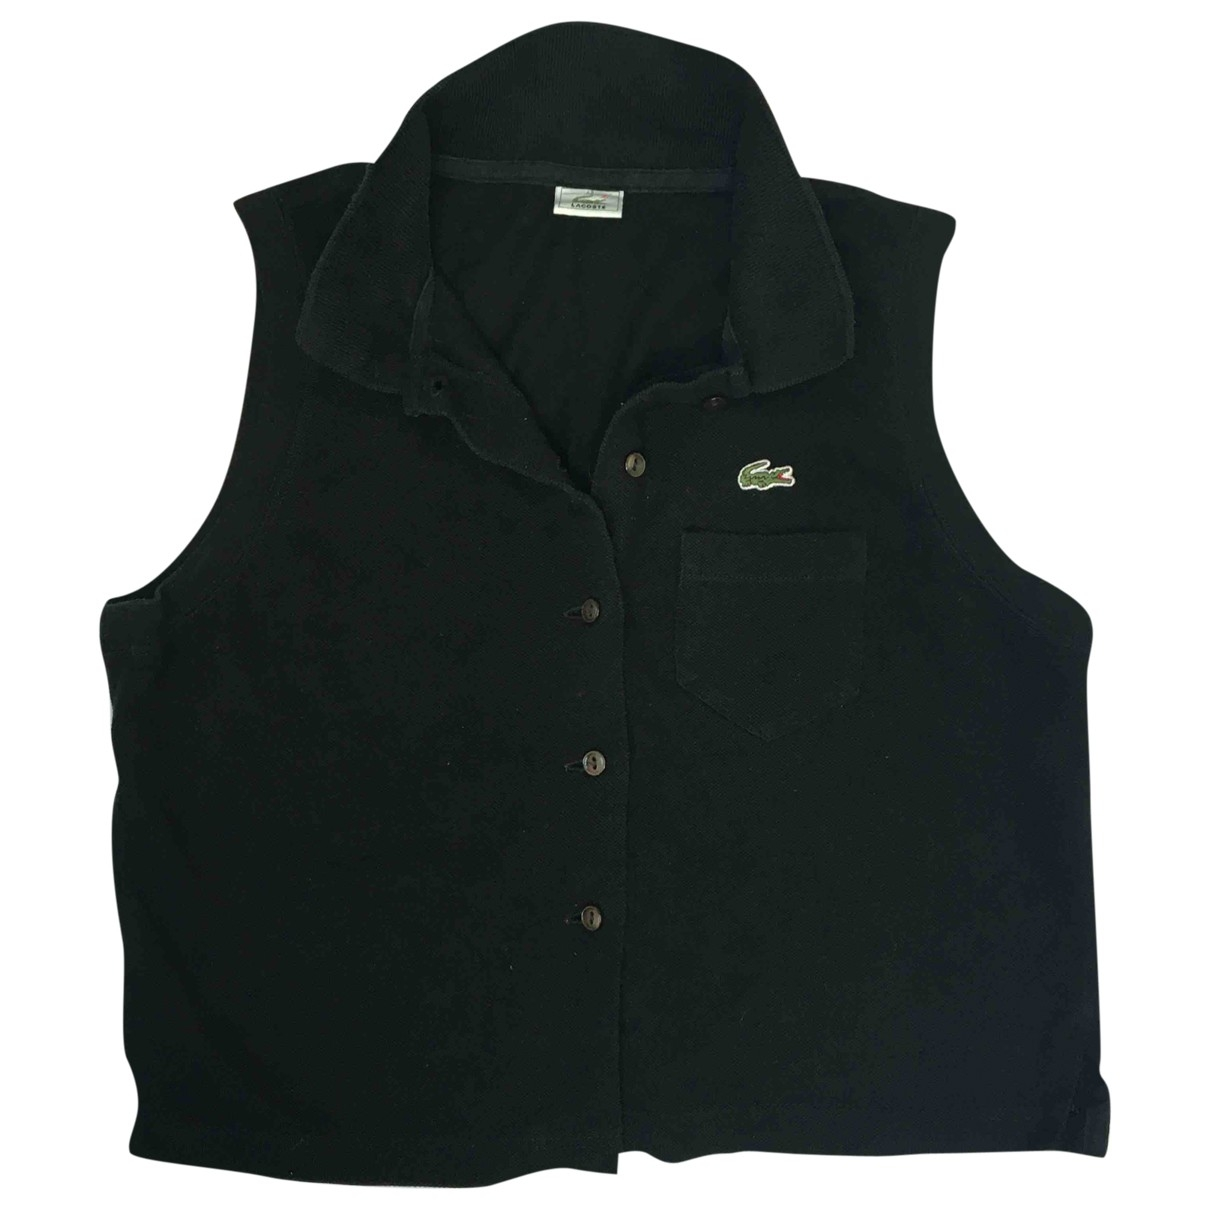 Lacoste \N Black Cotton  top for Women 42 FR